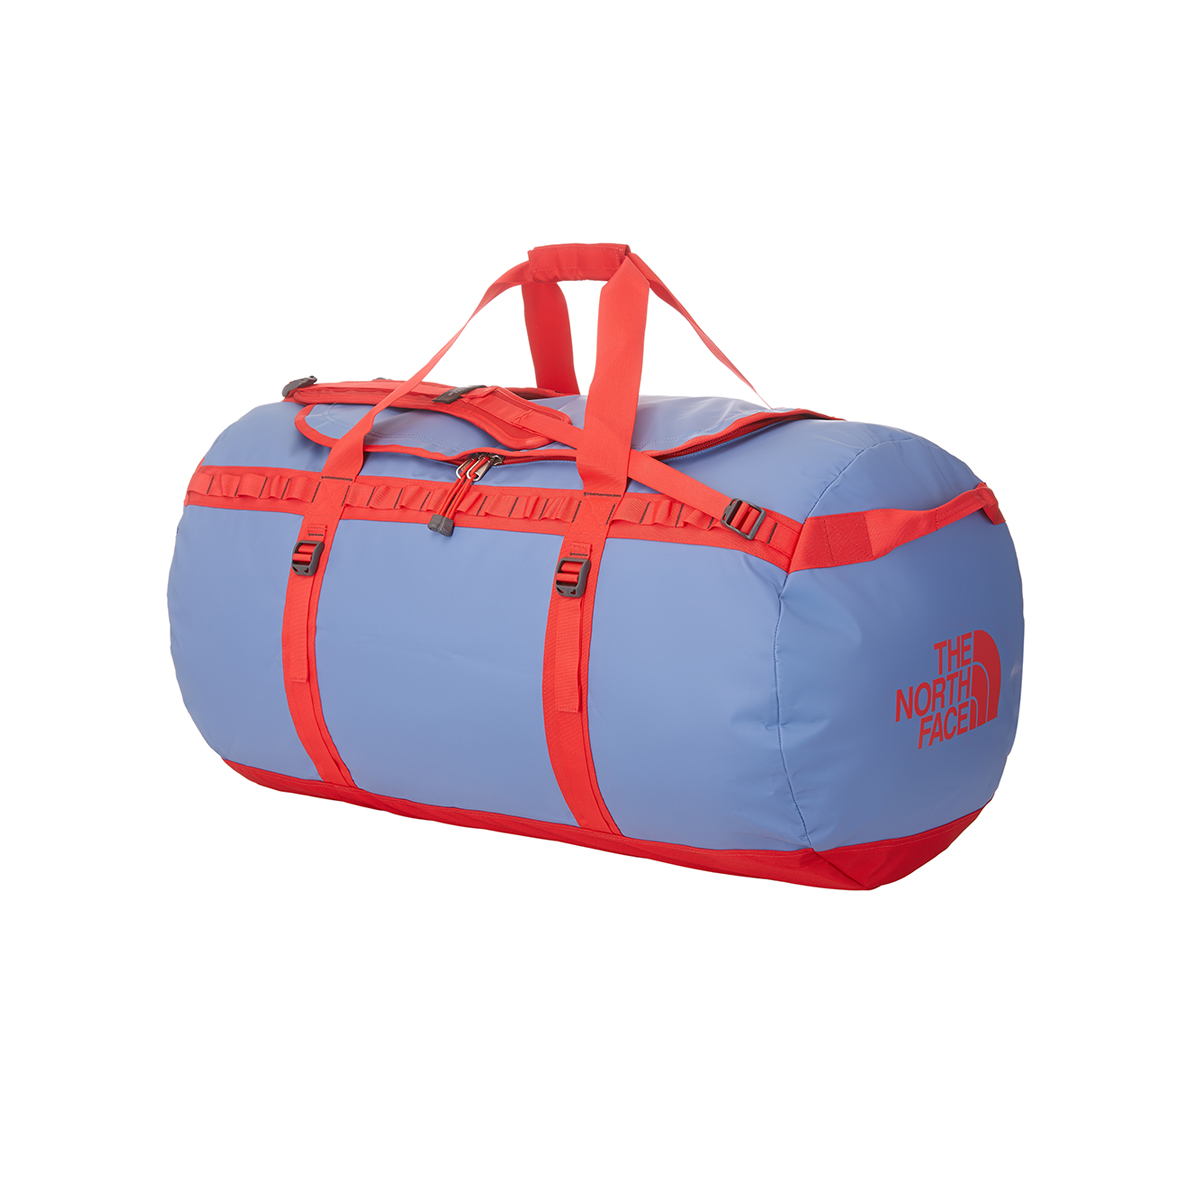 a66c75f85338 The North Face Base Camp Duffel (Extra Large)   Bags   EpicTV Shop